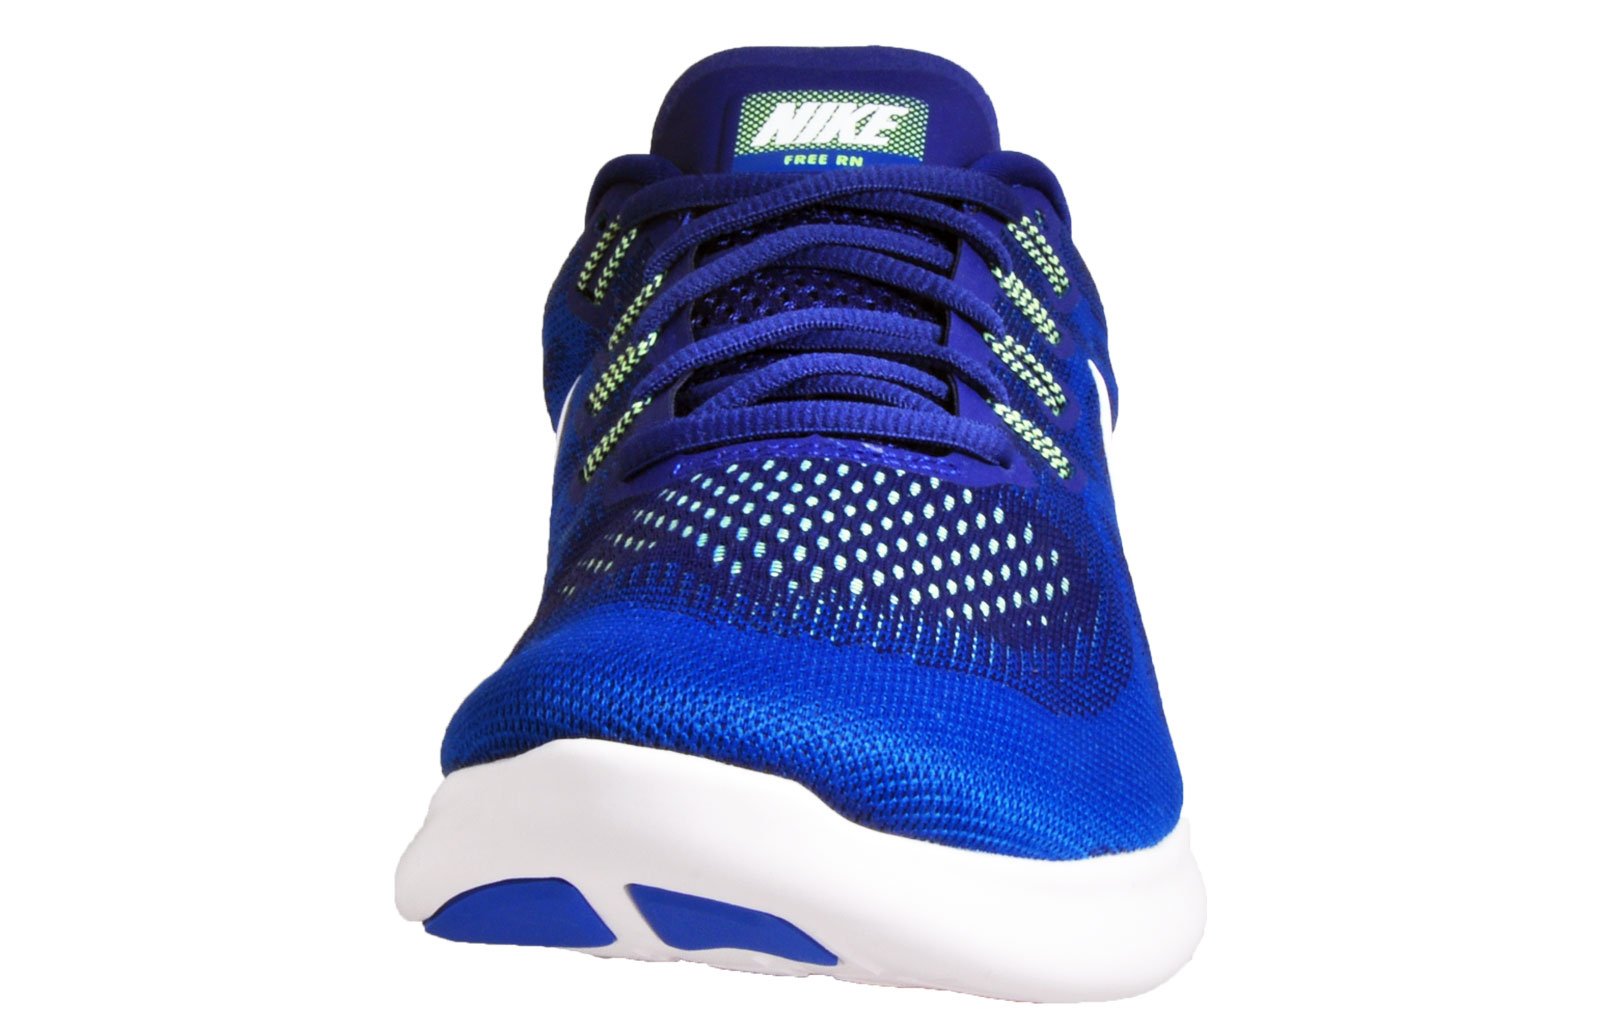 the best attitude faf05 9a9bd Nike Free RN Men s Premium Running Shoes Fitness Gym Trainers Blue